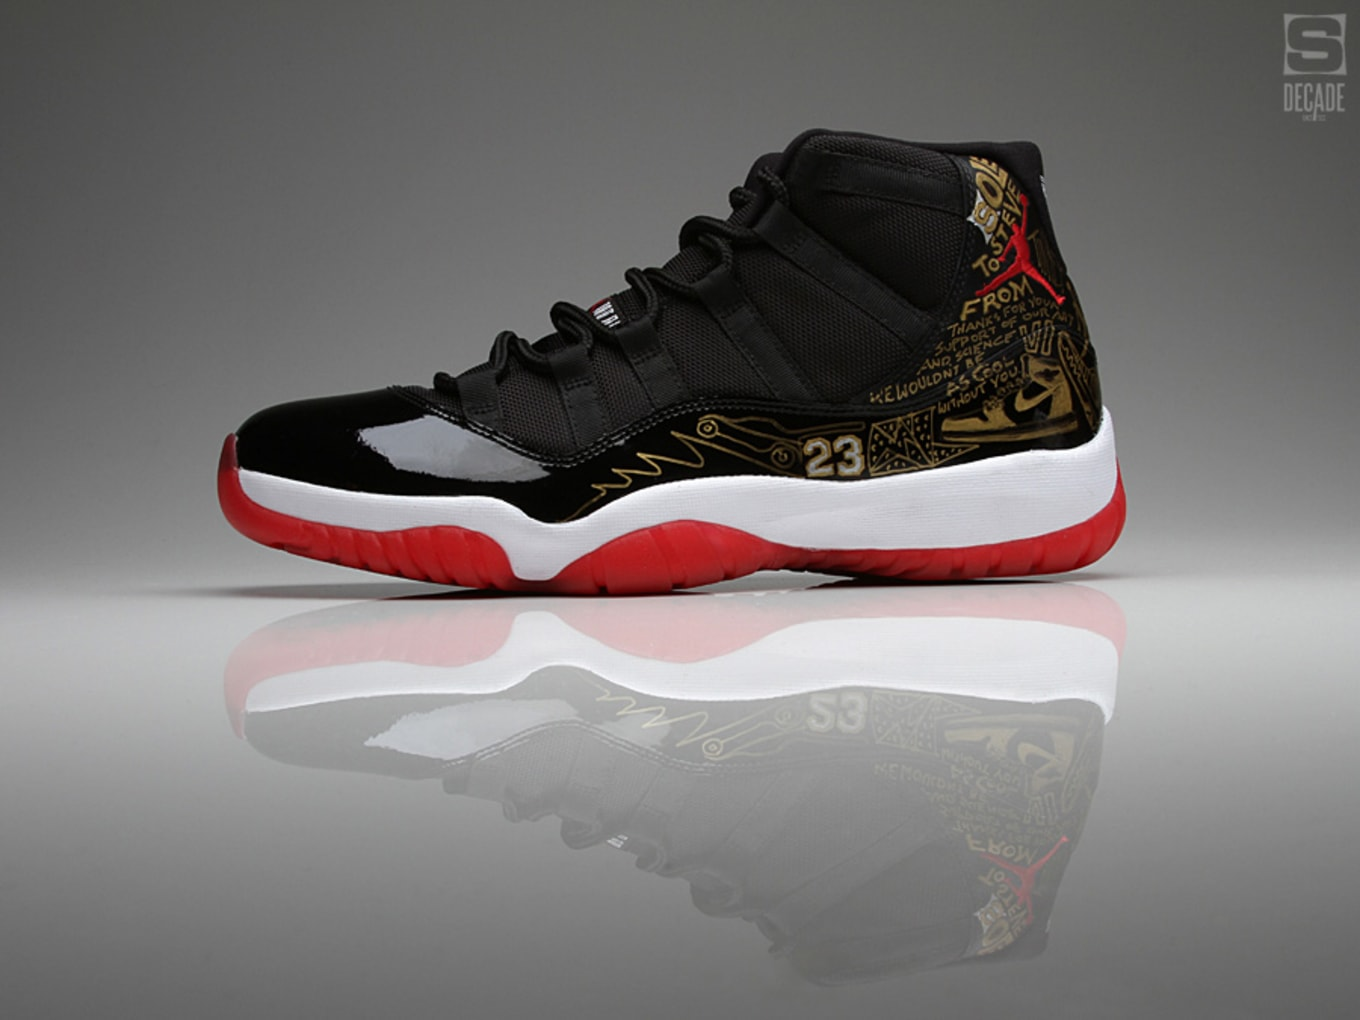 The Best Air Jordan XI 11 Customs | Sole Collector